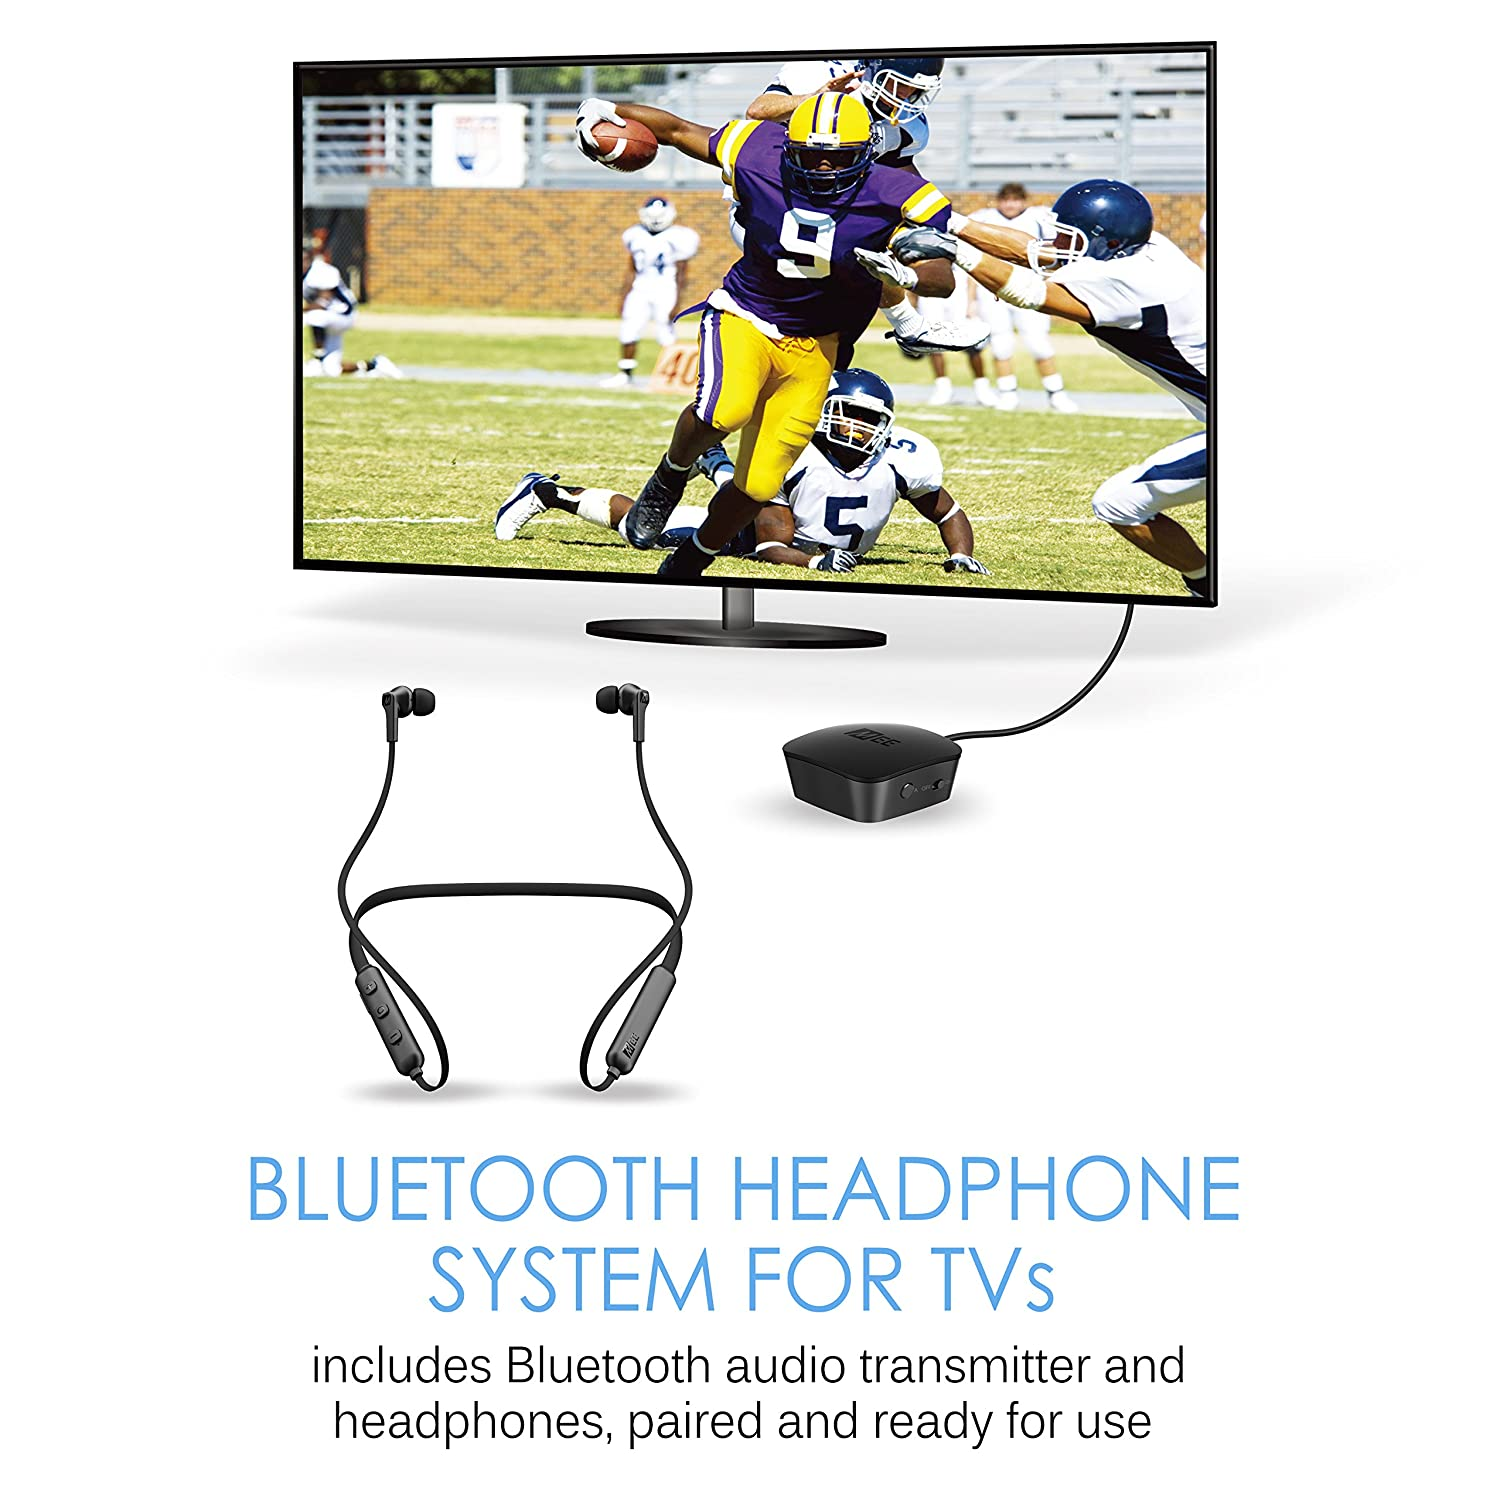 Amazon.com: MEE audio Connect T1N1 Bluetooth Wireless Headphone System for TV - Includes Bluetooth Wireless audio Transmitter and Wireless Neckband In-Ear ...